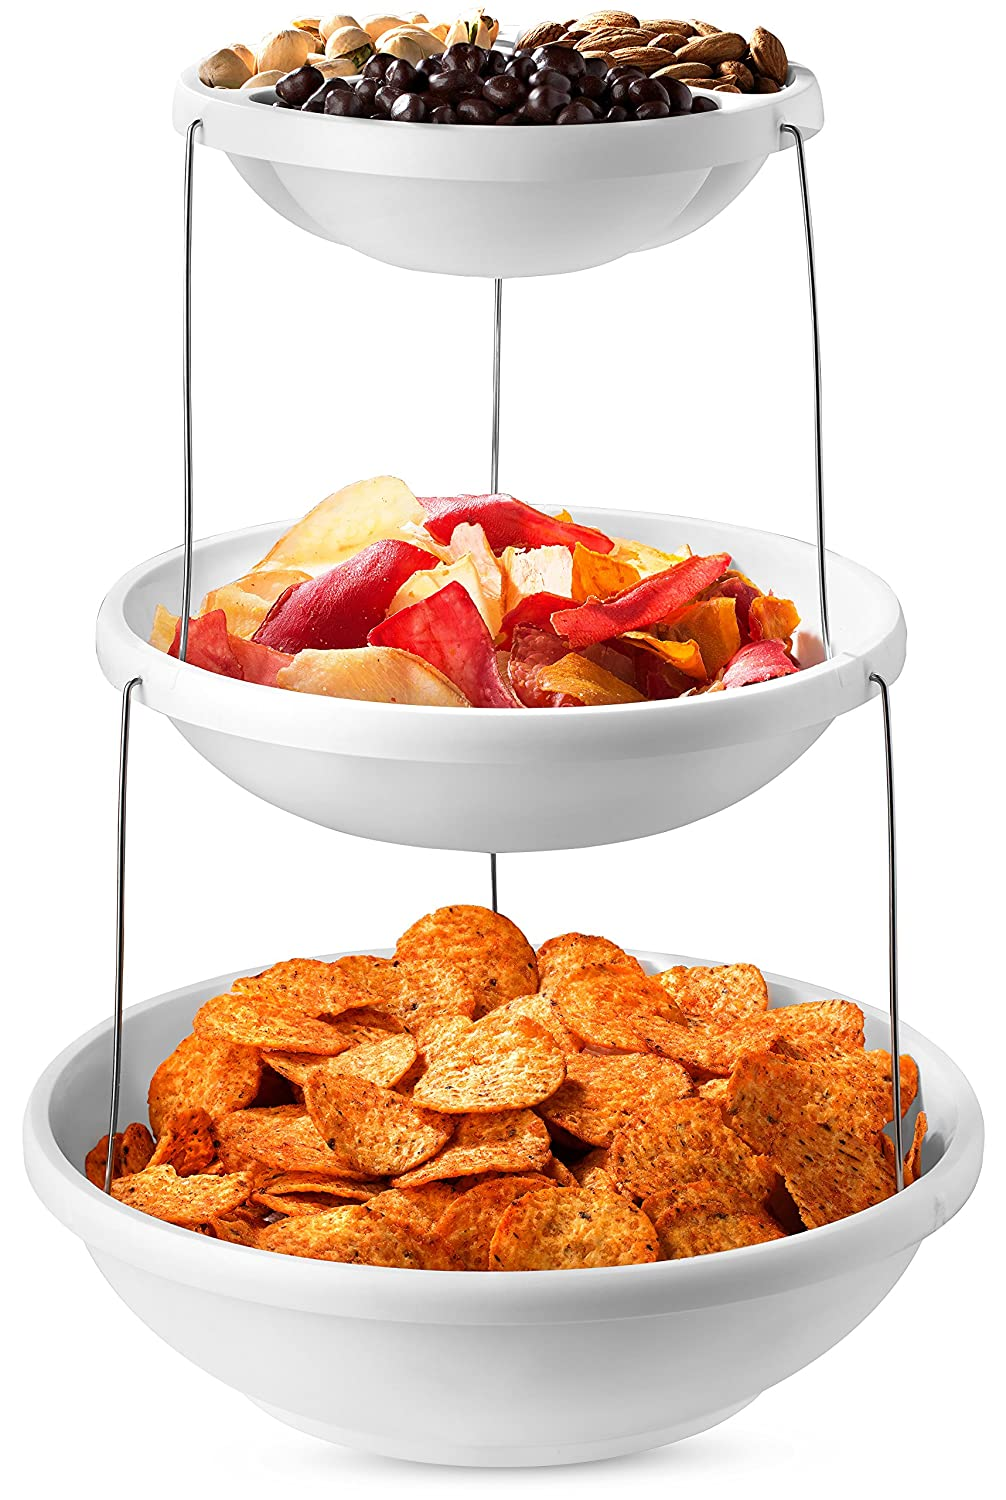 Collapsible Bowl, 3 Tier - The Decorative Plastic Bowls Twist Down and Fold Inside for Minimal Storage Space. Perfect for Serving Snacks, Salad and Fruit. The Top Bowl is Divided into Three Sections. Masirs 5397